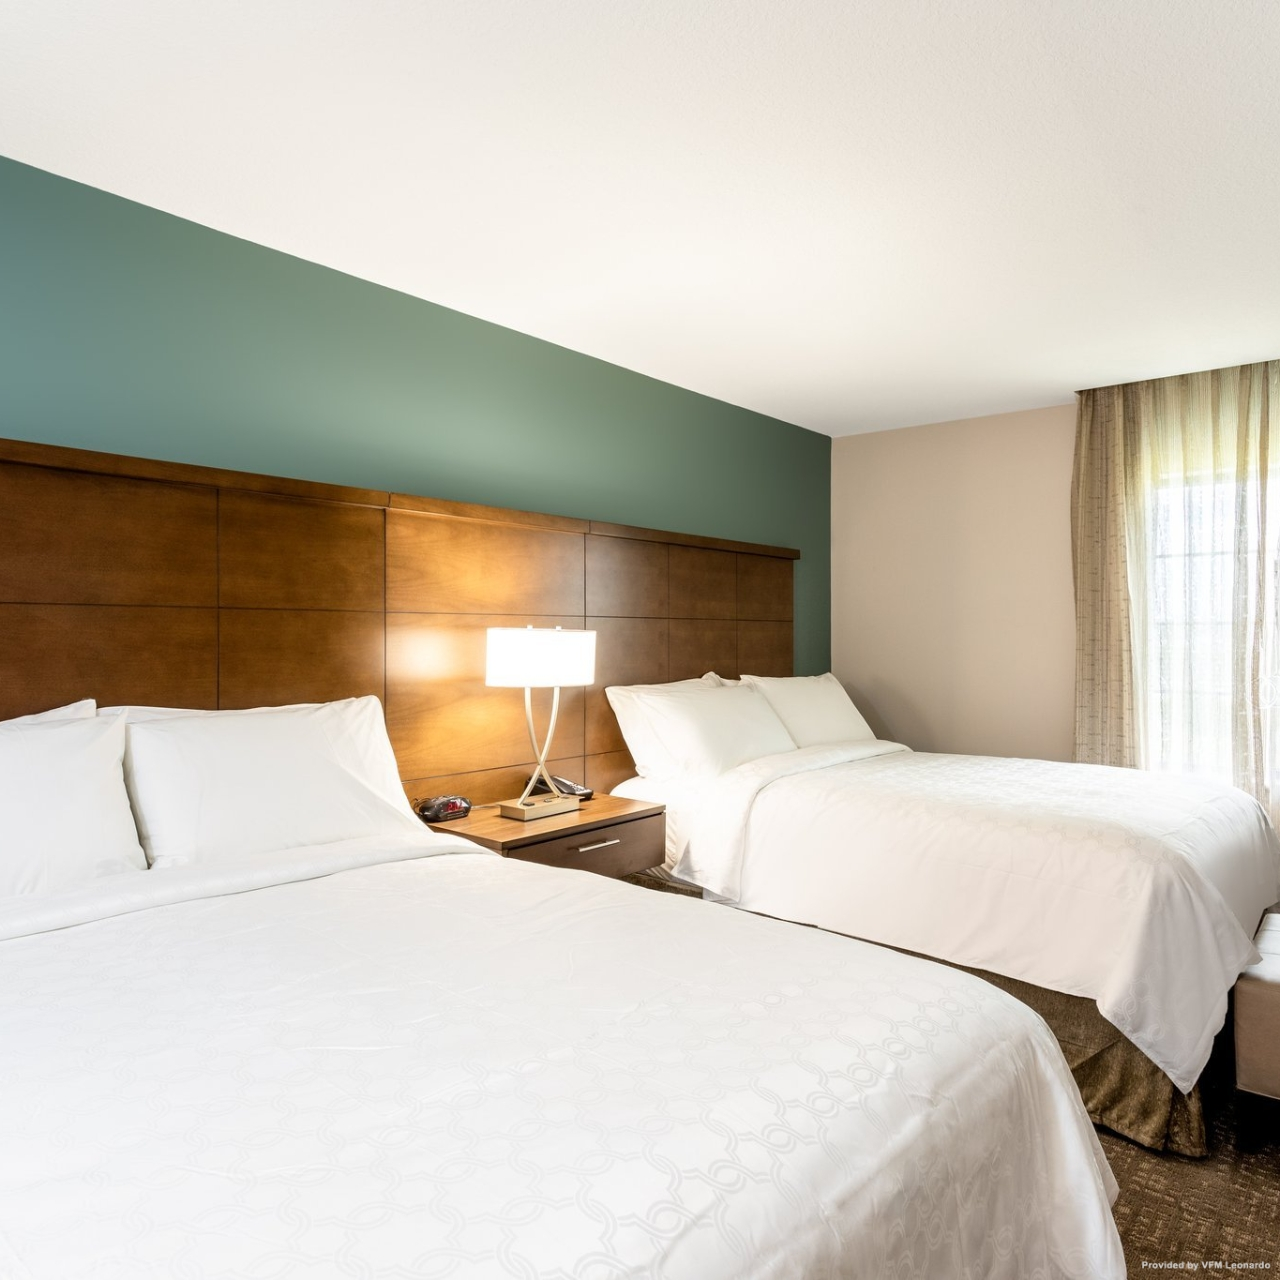 Hotel Staybridge Suites Fort Lauderdale Airport West United States Of America At Hrs With Free Services